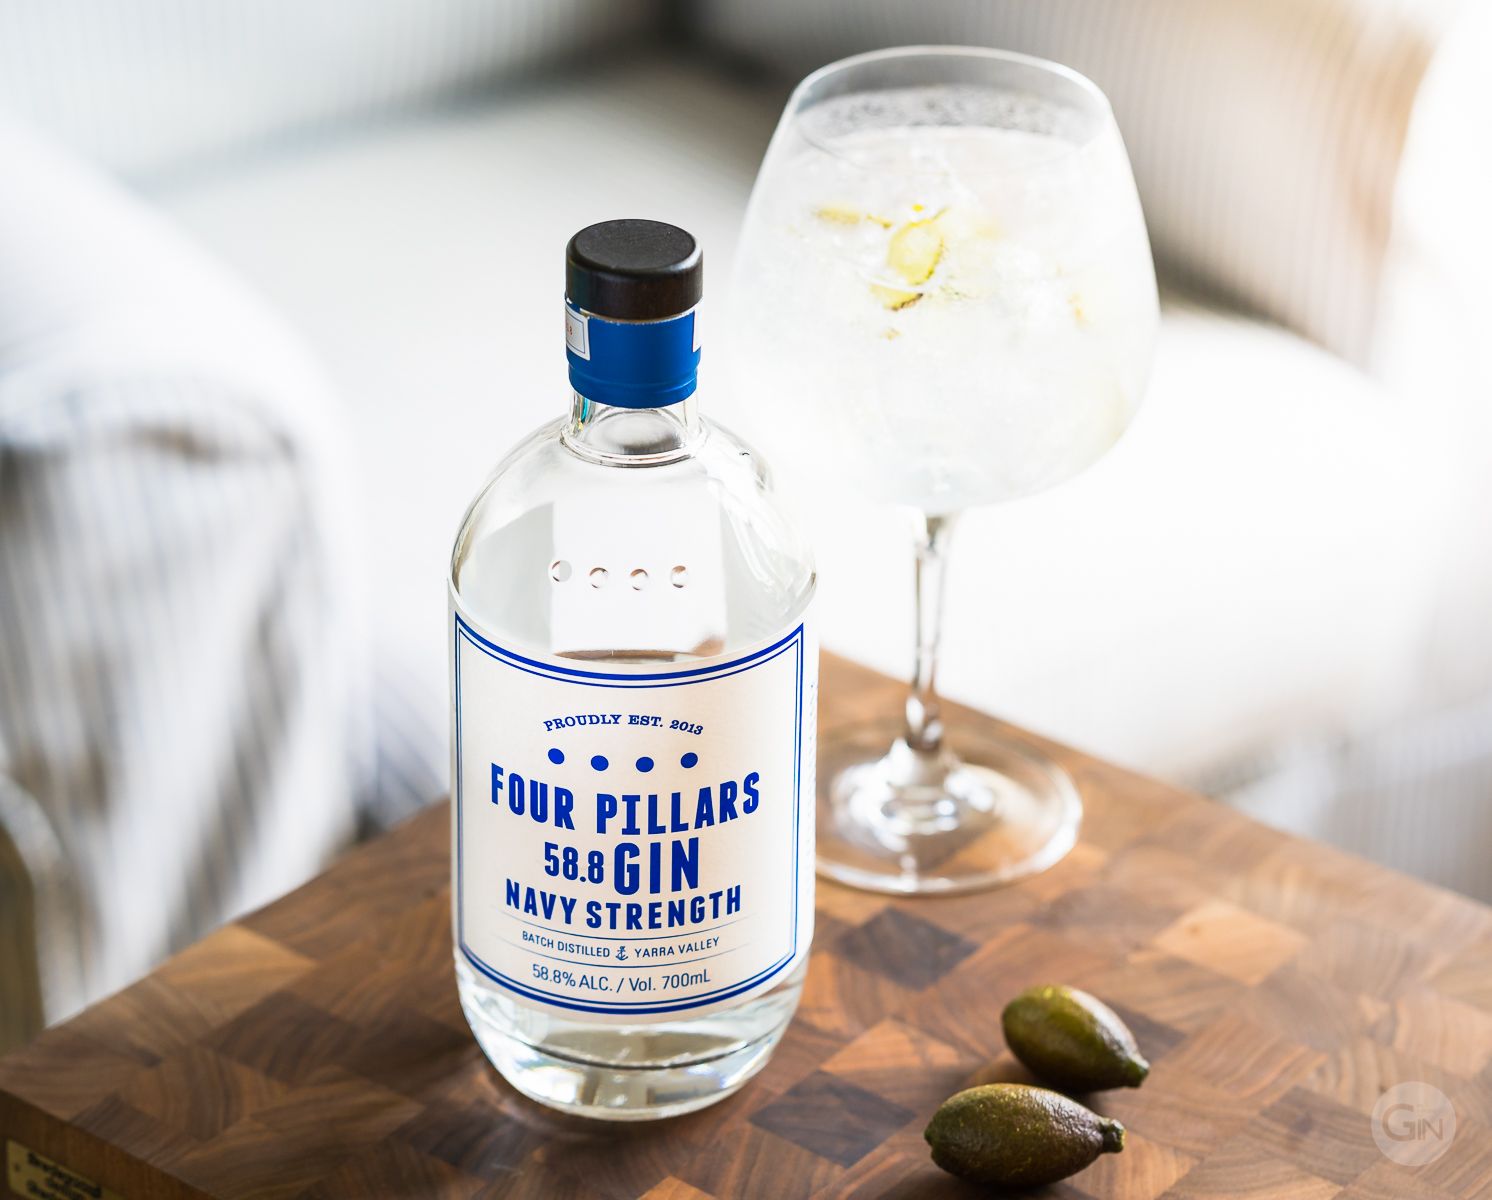 Four Pillars Navy Strength Gin med Fever-Tree Mediterranean Tonic og fingerlimes. Photo by Michael Sperling.